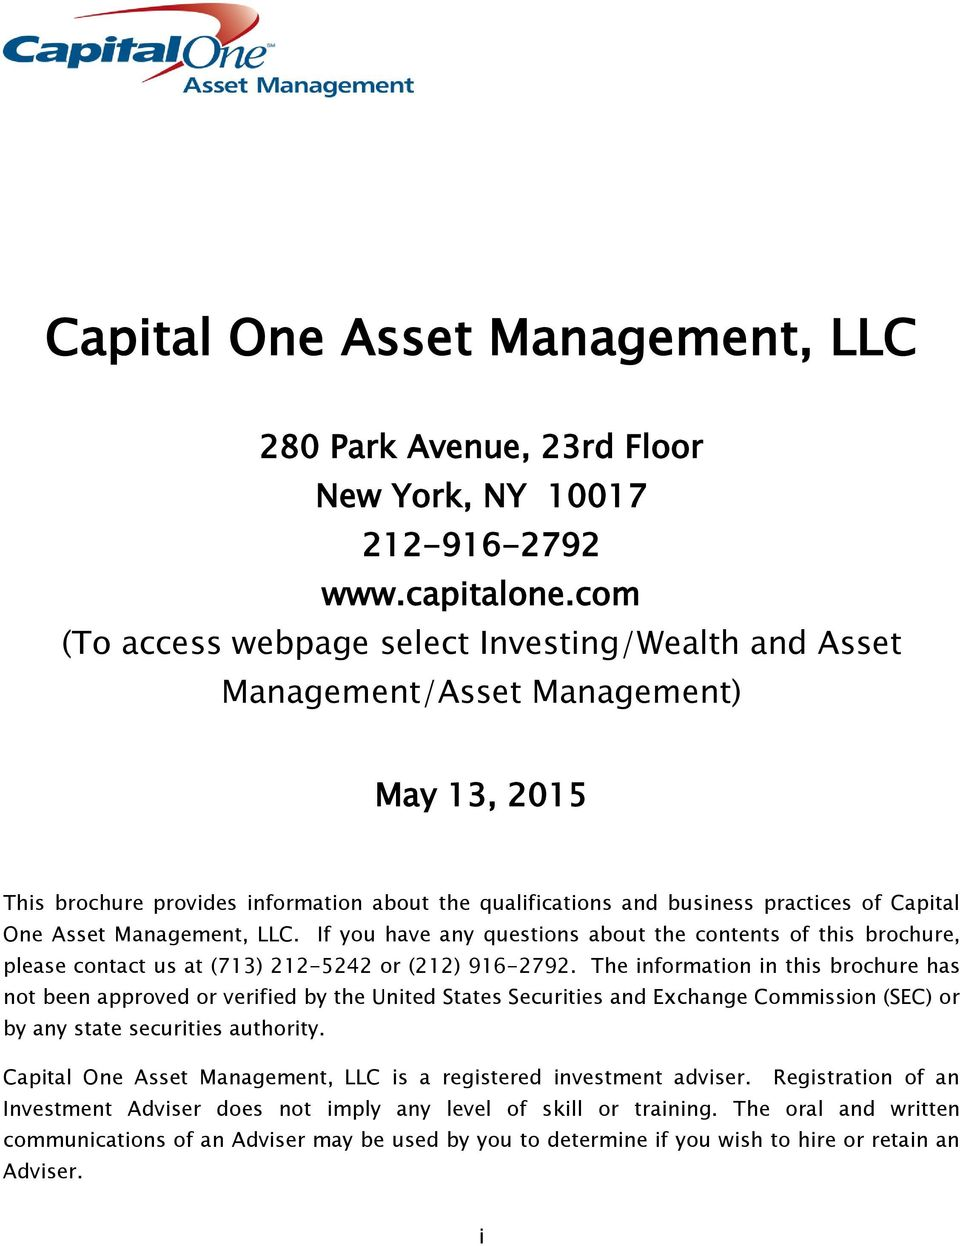 Asset Management, LLC. If you have any questions about the contents of this brochure, please contact us at (713) 212-5242 or (212) 916-2792.